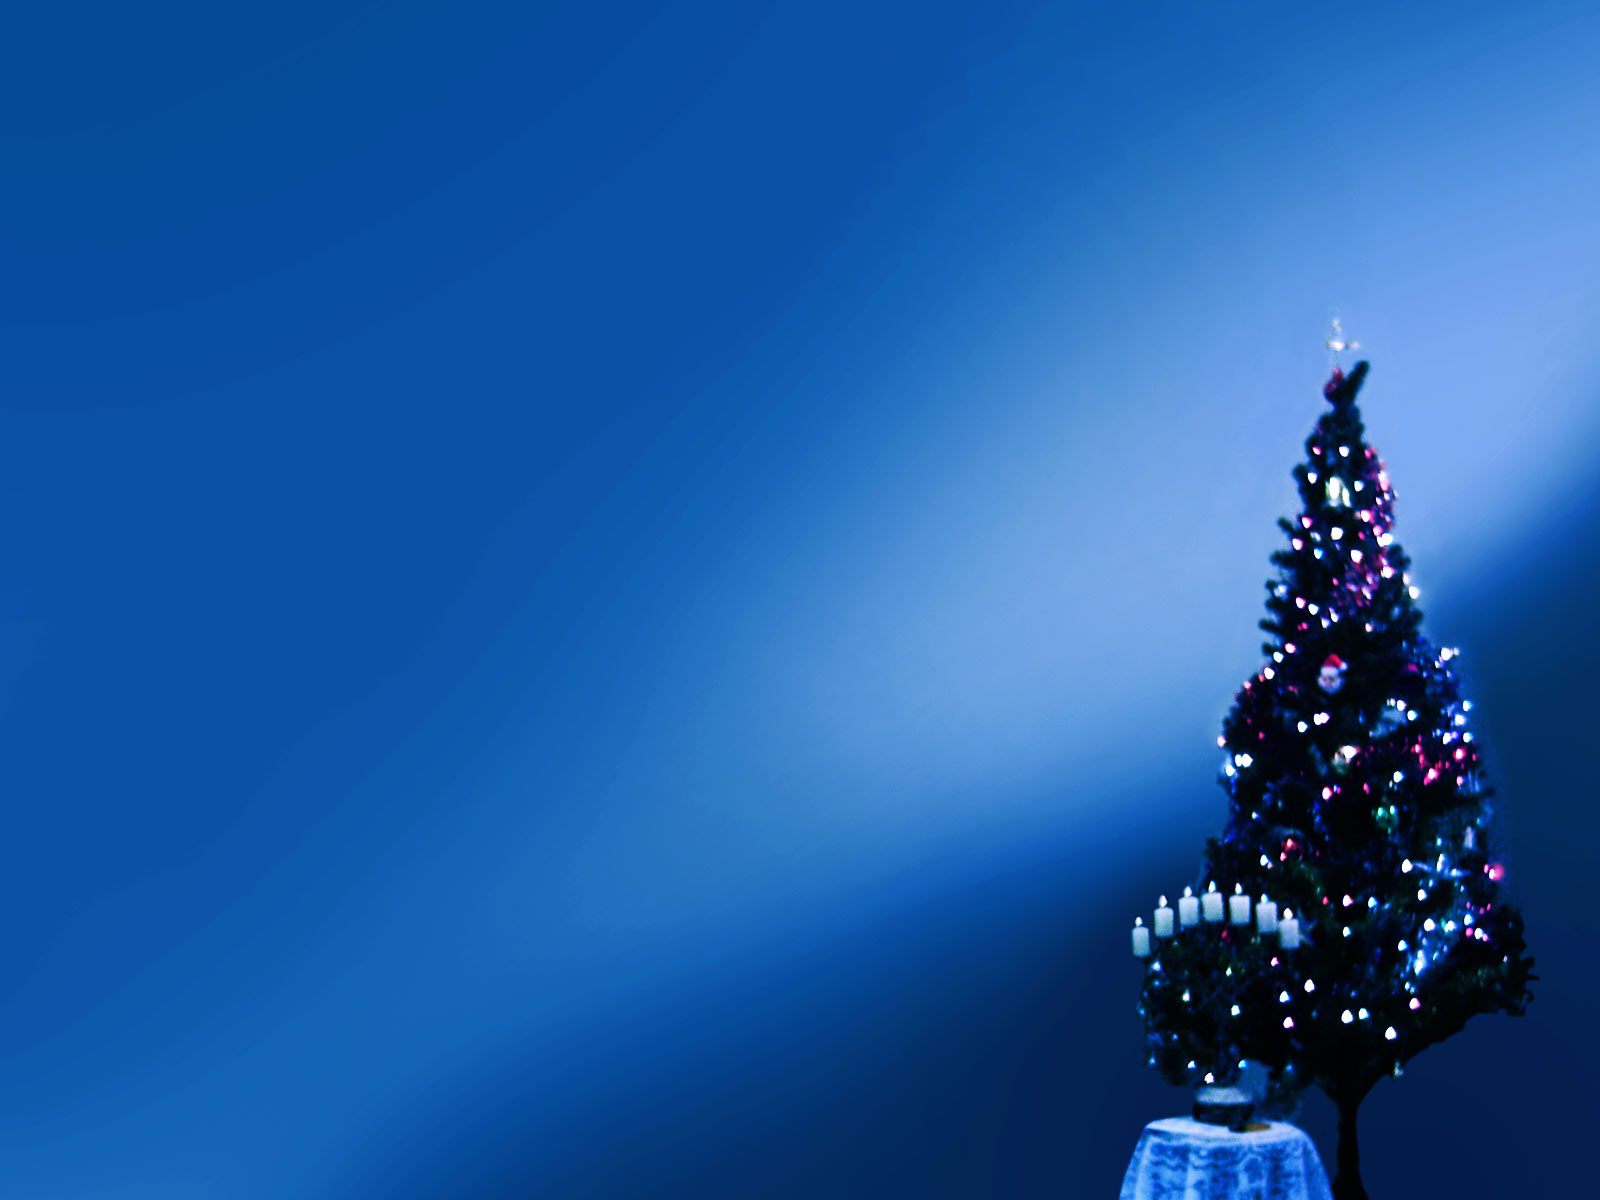 Night Christmas Theme for PowerPoint Background 1600x1200